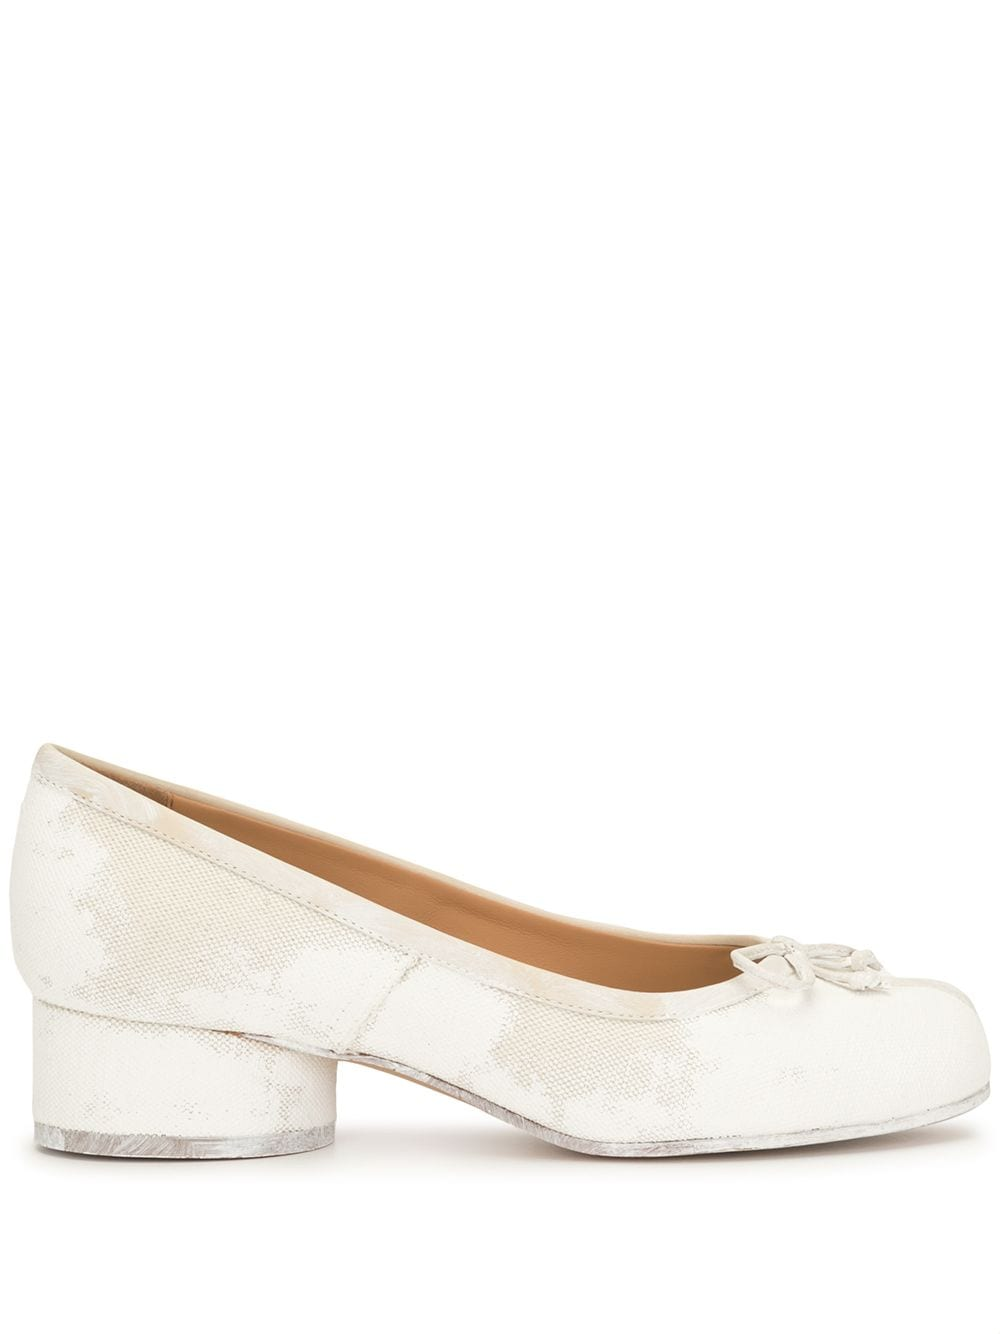 MAISON MARGIELA WOMEN TABI LOW HEEL FLAT